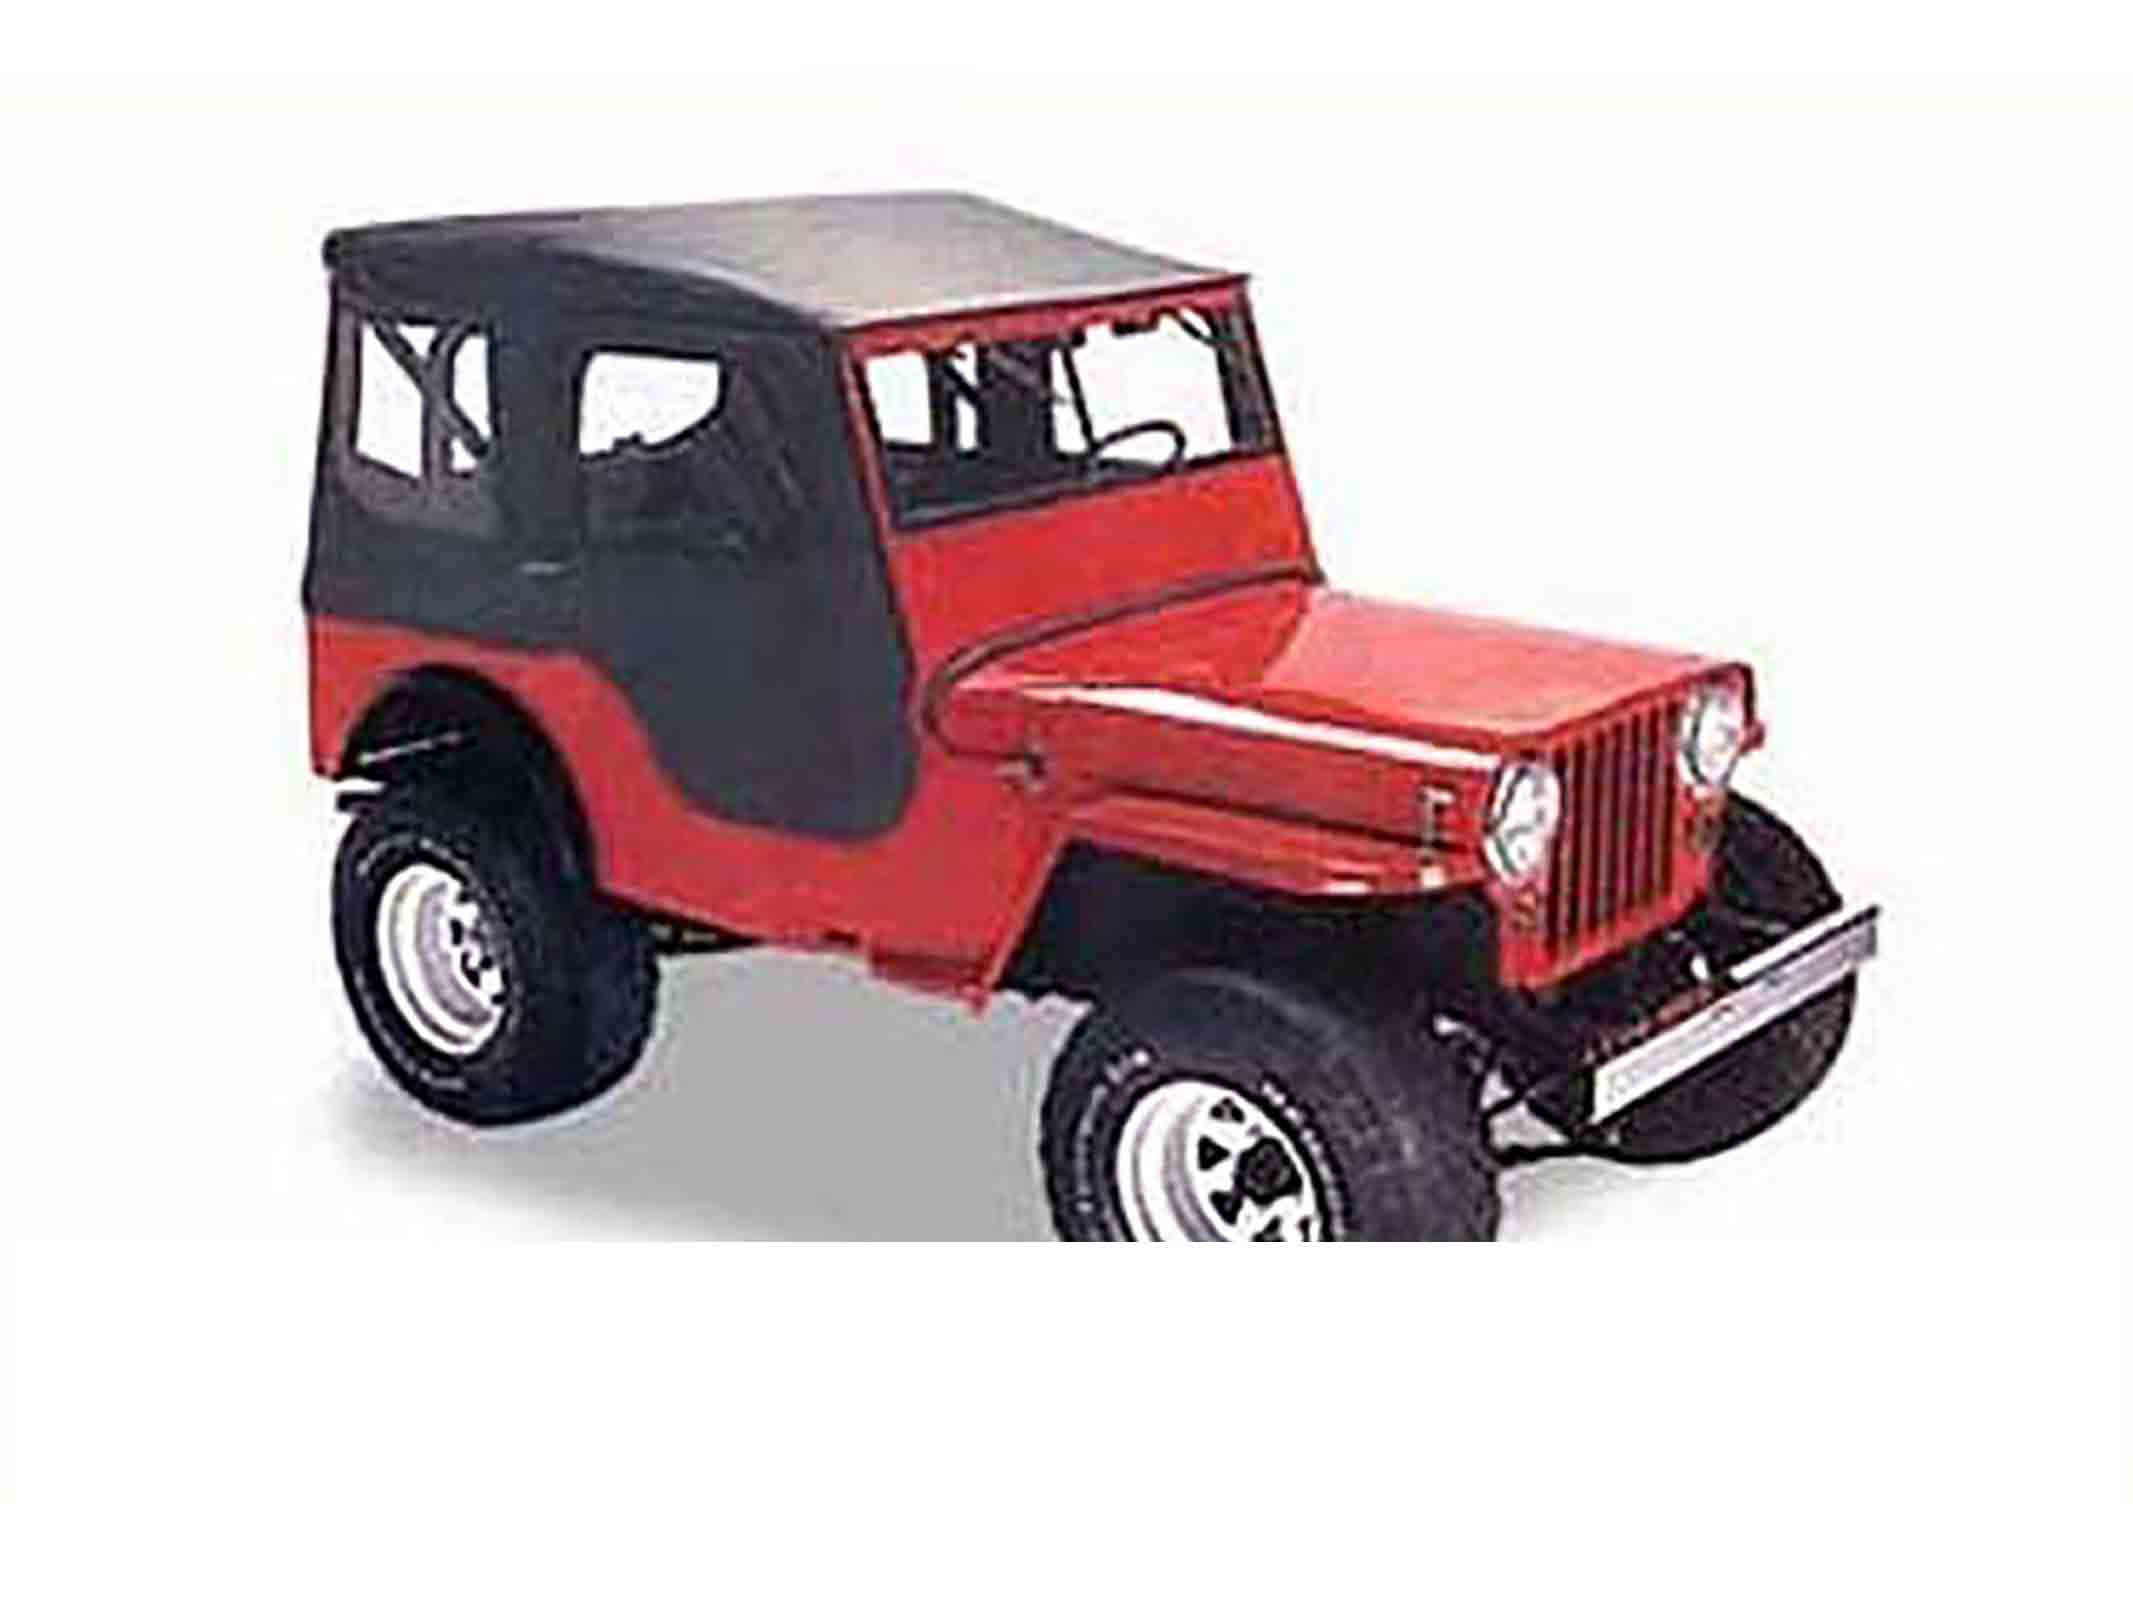 Tigertop softtop soft top capottina jeep cj3b 53 64 senza centina ricambi jeep